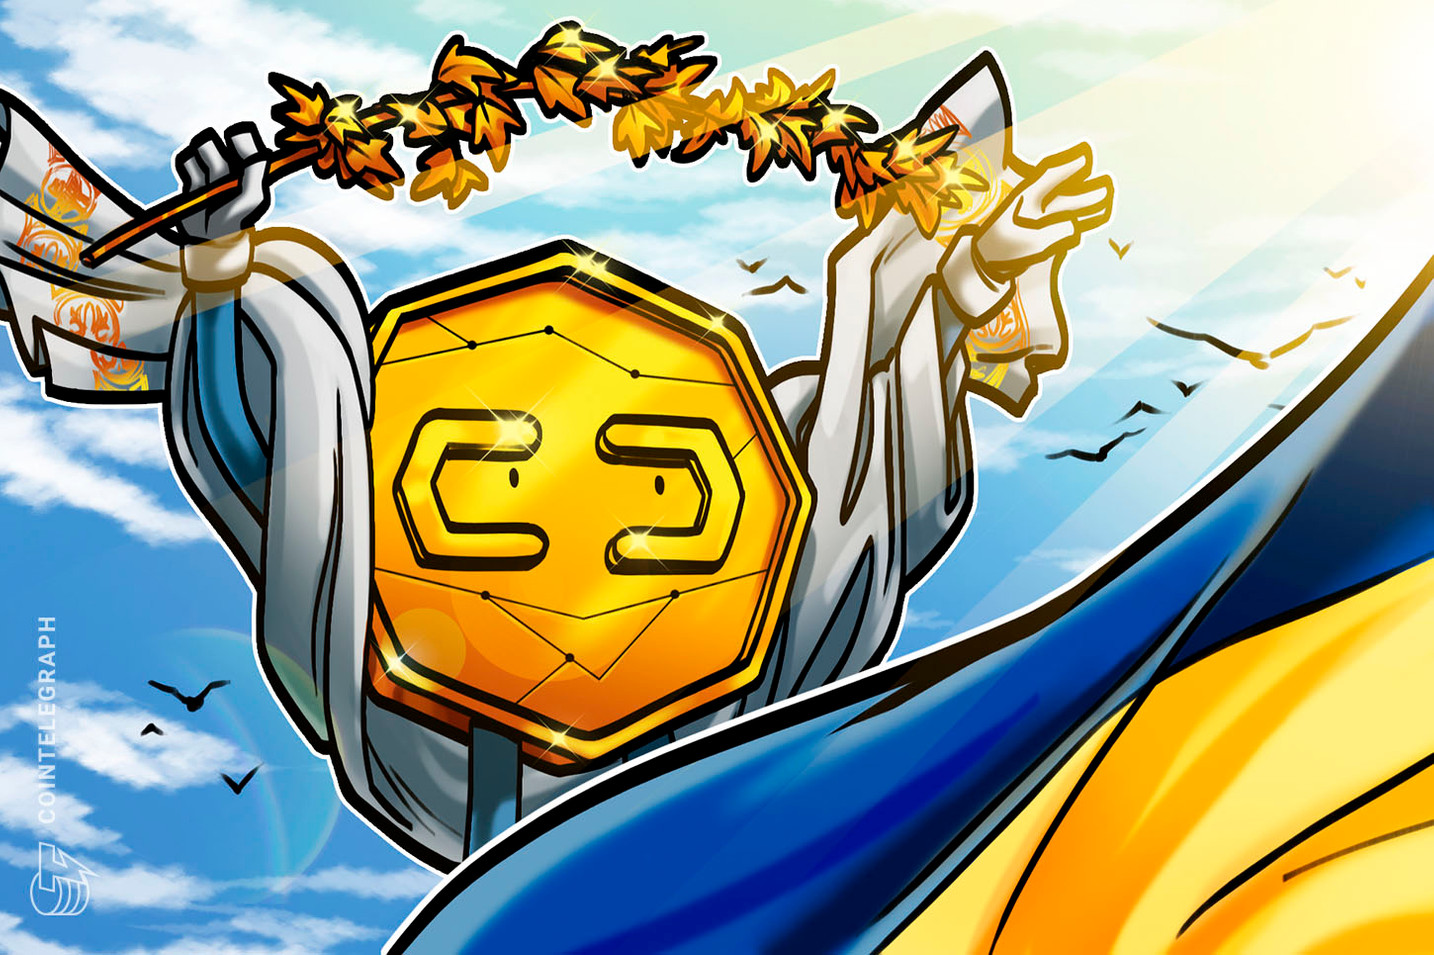 Ukraine taps Stellar to develop digital asset infrastructure, including CBDC framework